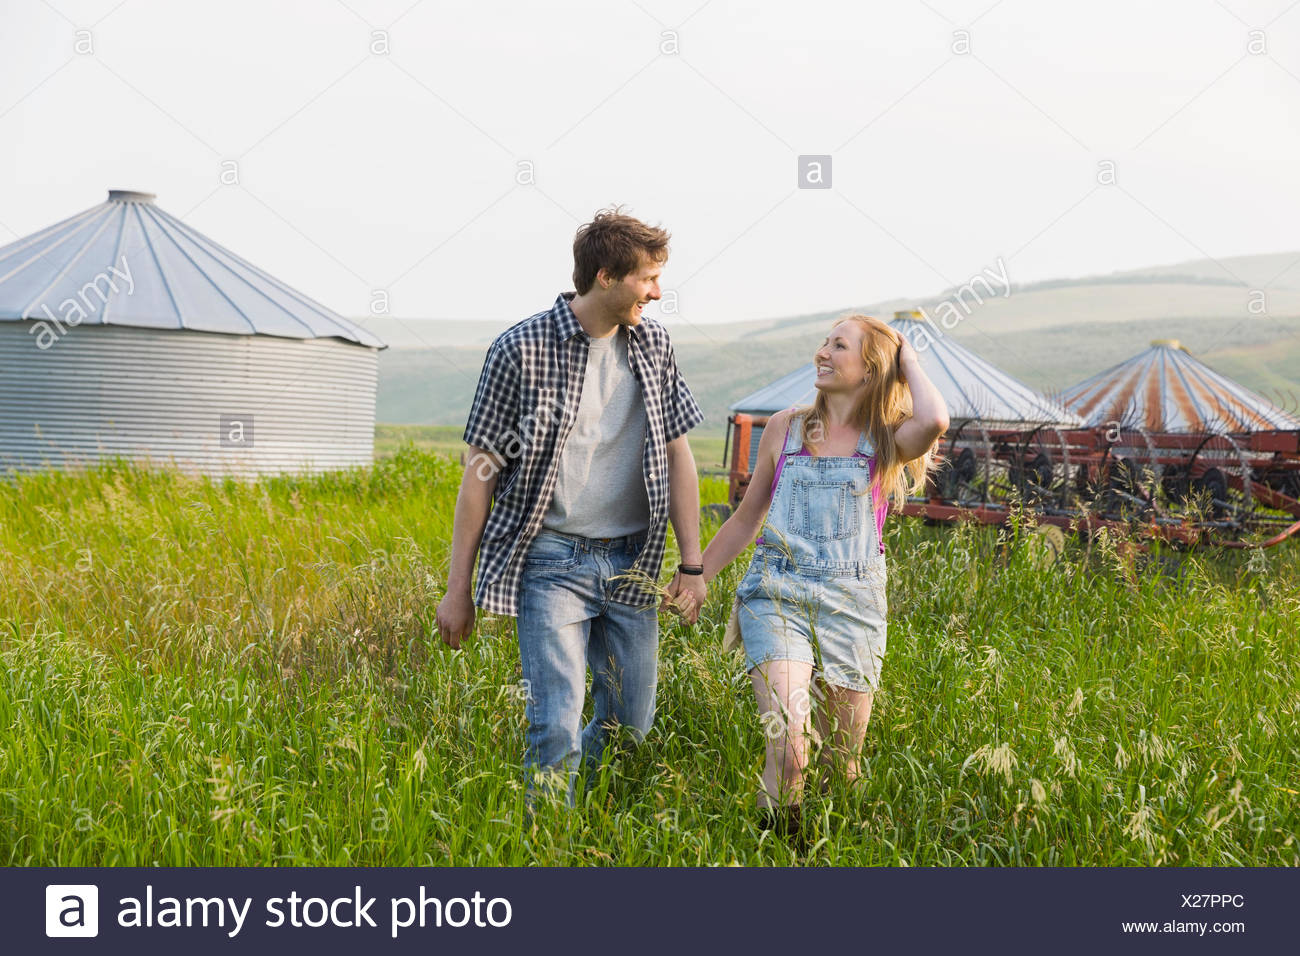 Couple holding hands and walking in rural field - Stock Image